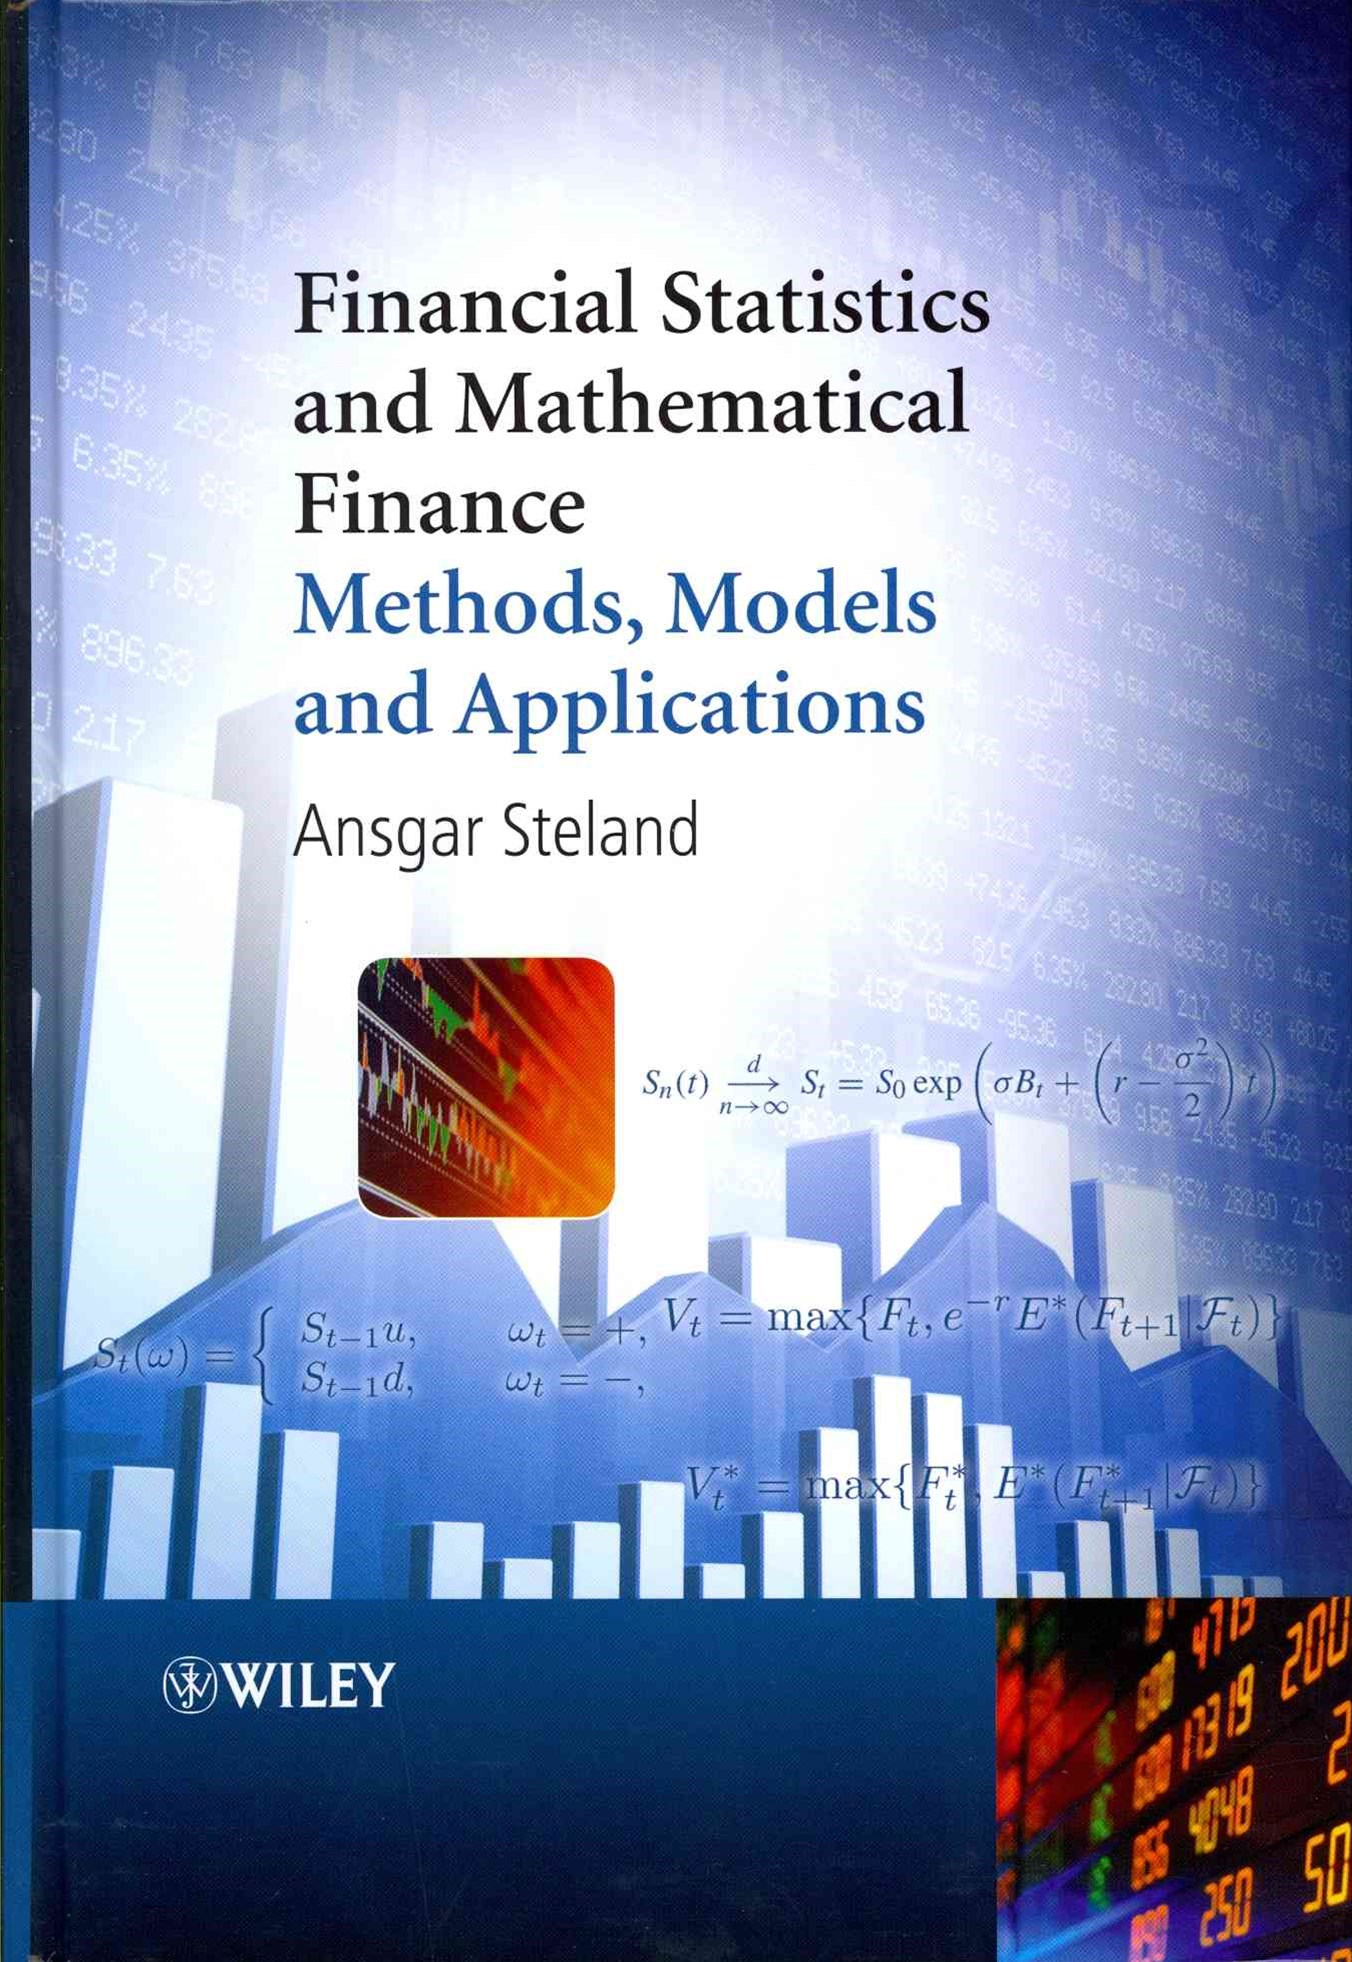 Financial Statistics and Mathematical Finance -   Methods, Models and Applications